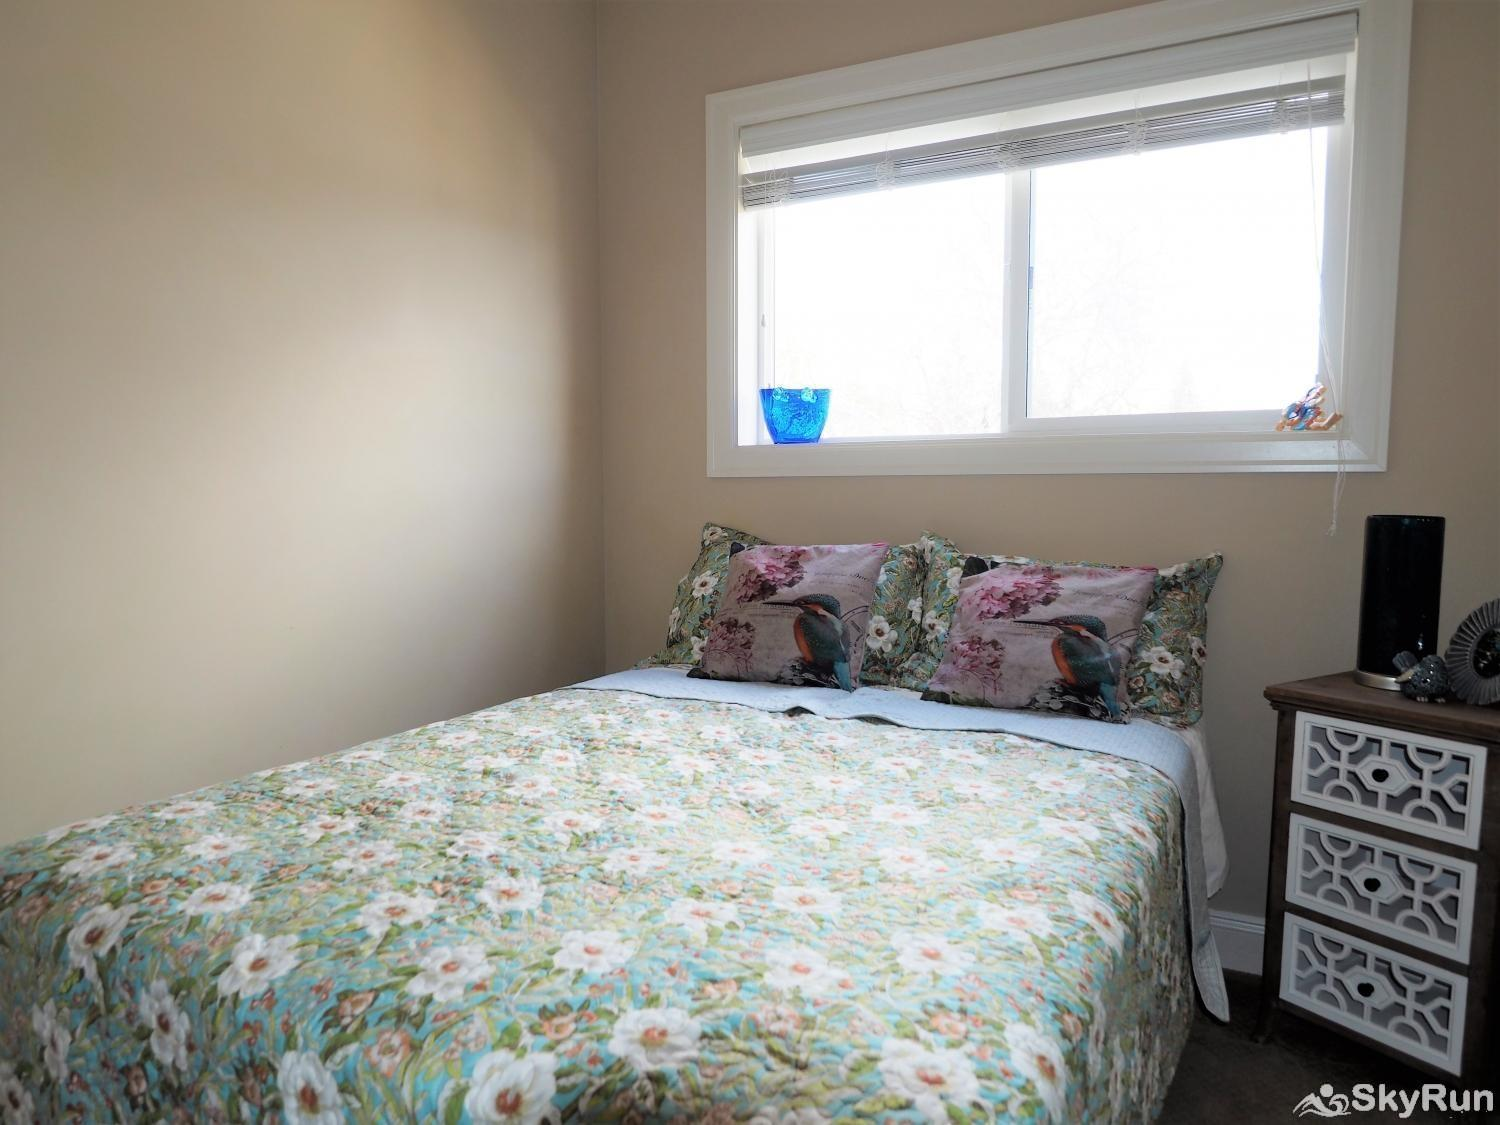 Old Summerland 4 bedroom townhouse Bedroom 3 is on the top floor and has a double bed